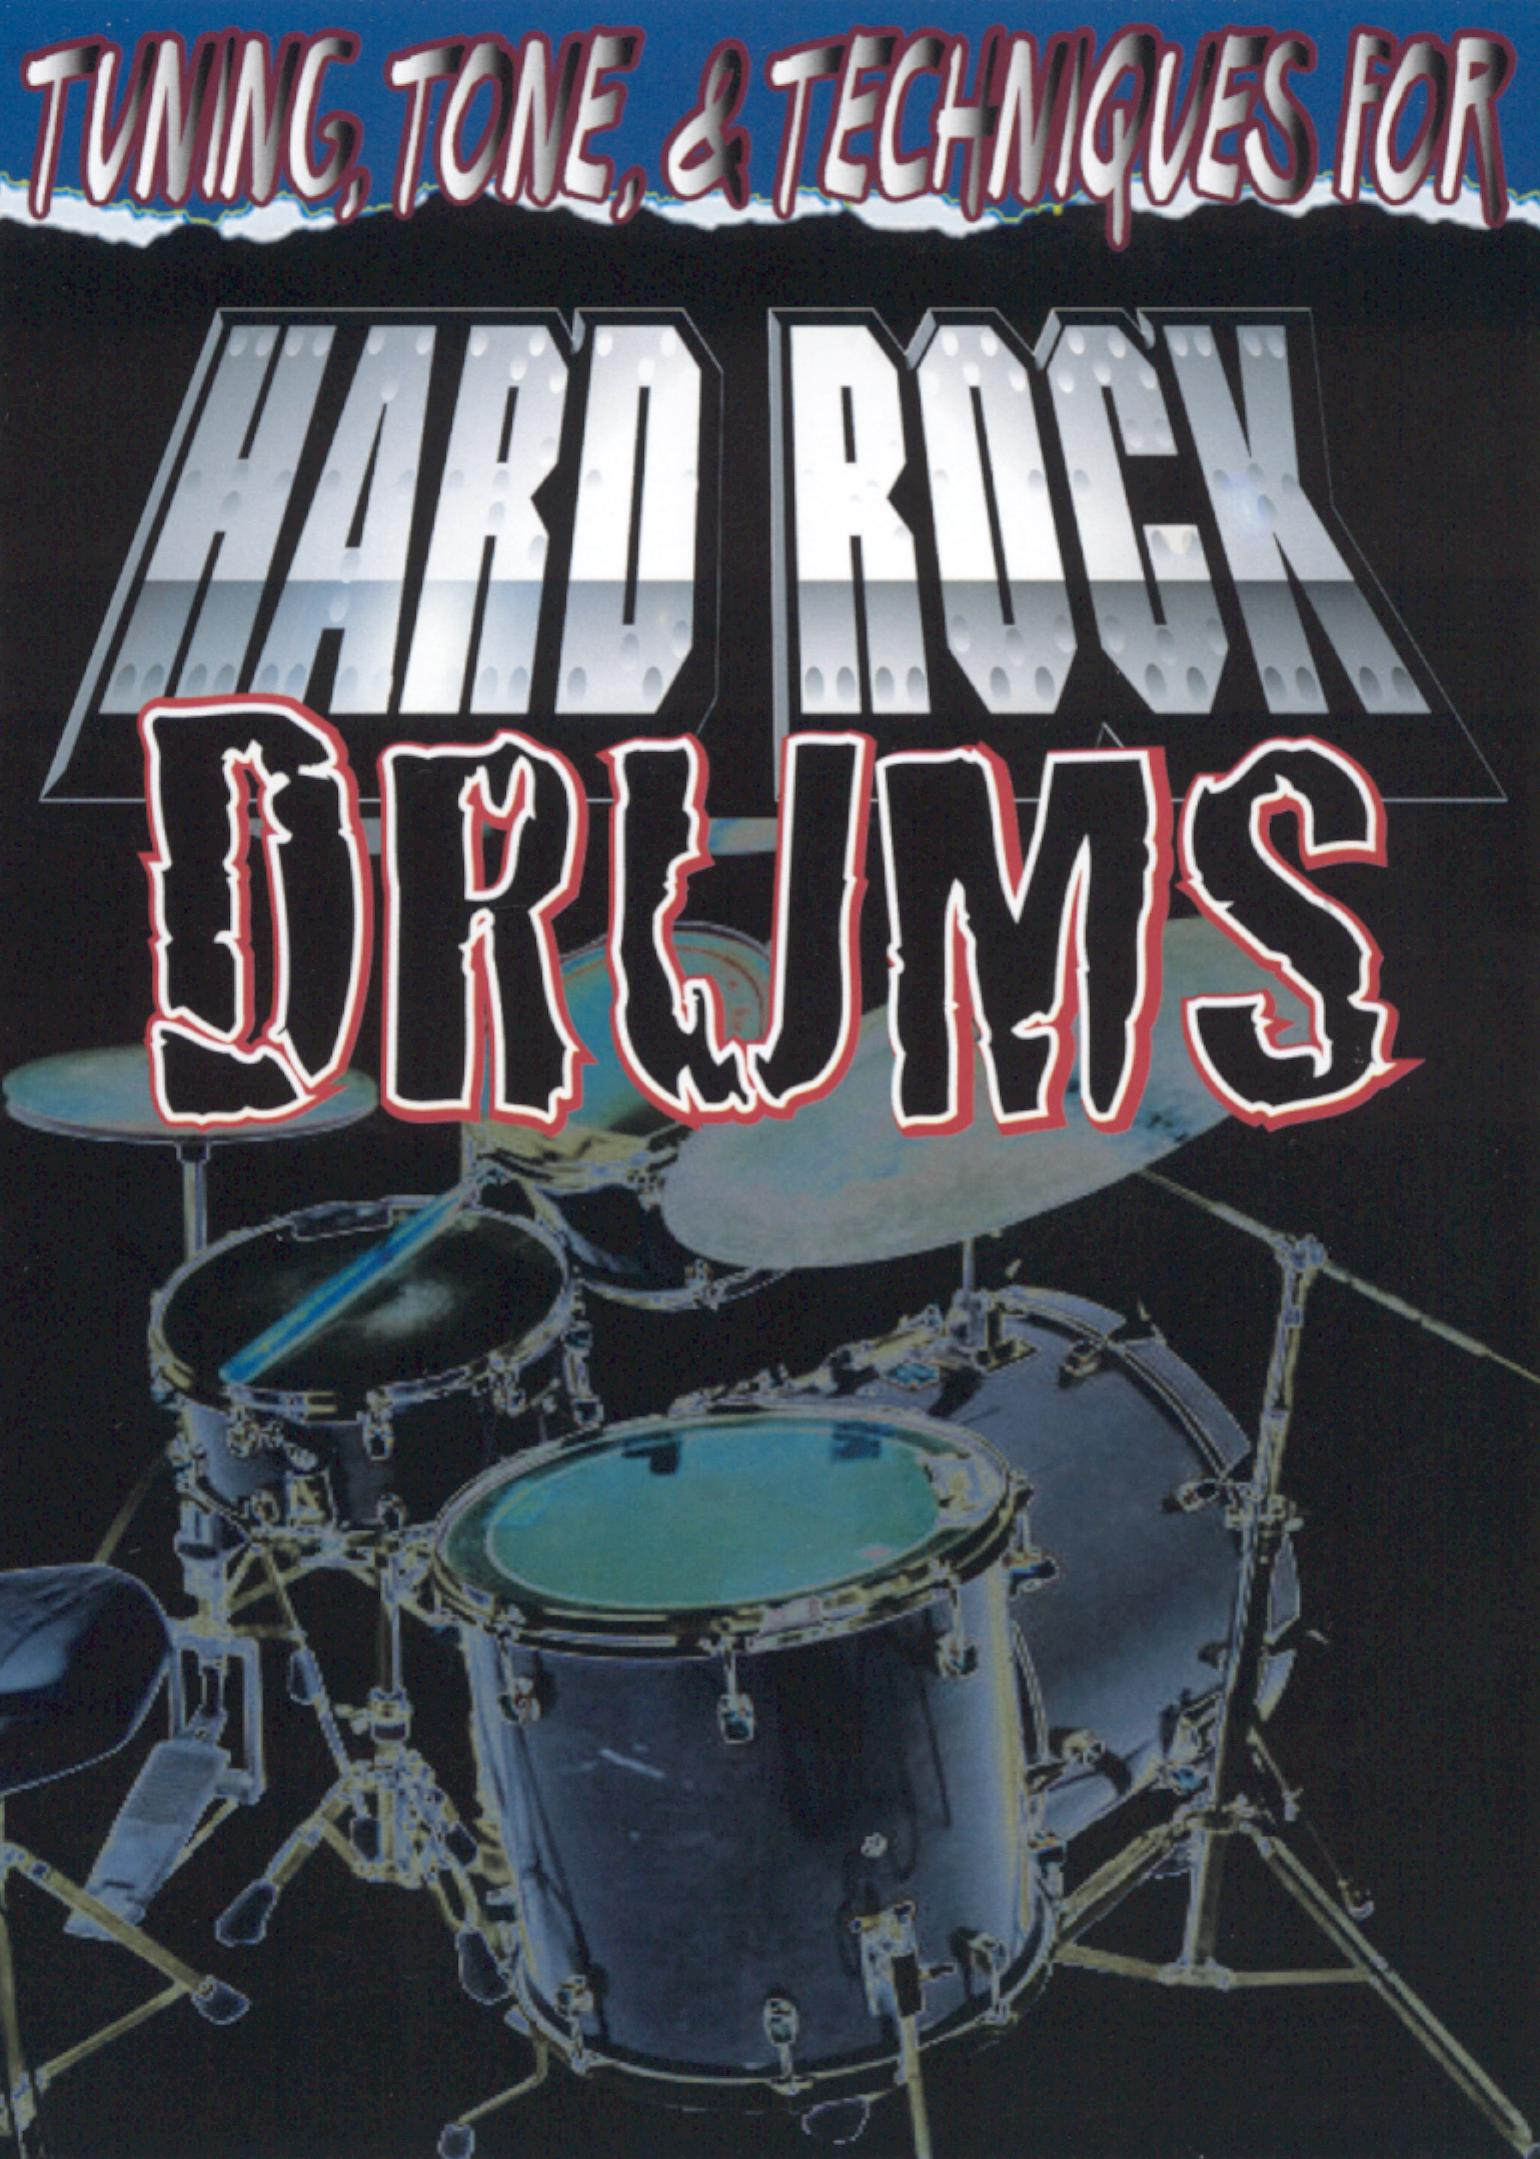 Hot Drum: Hard Rock Drums